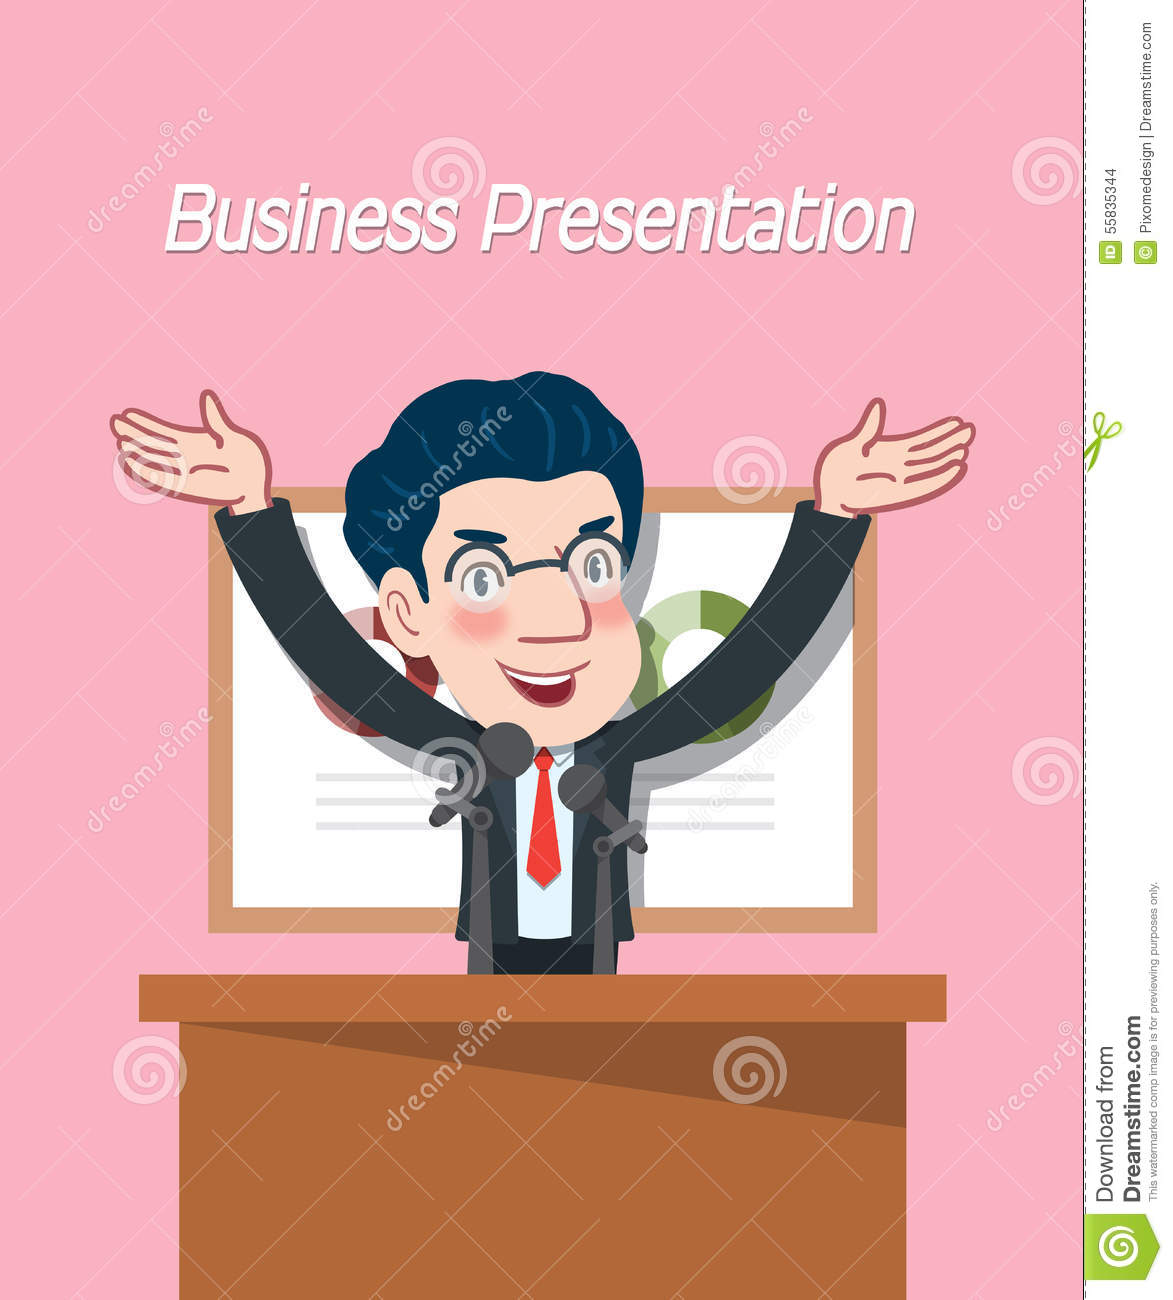 Character Design Presentation : Drawing flat character design business presentation